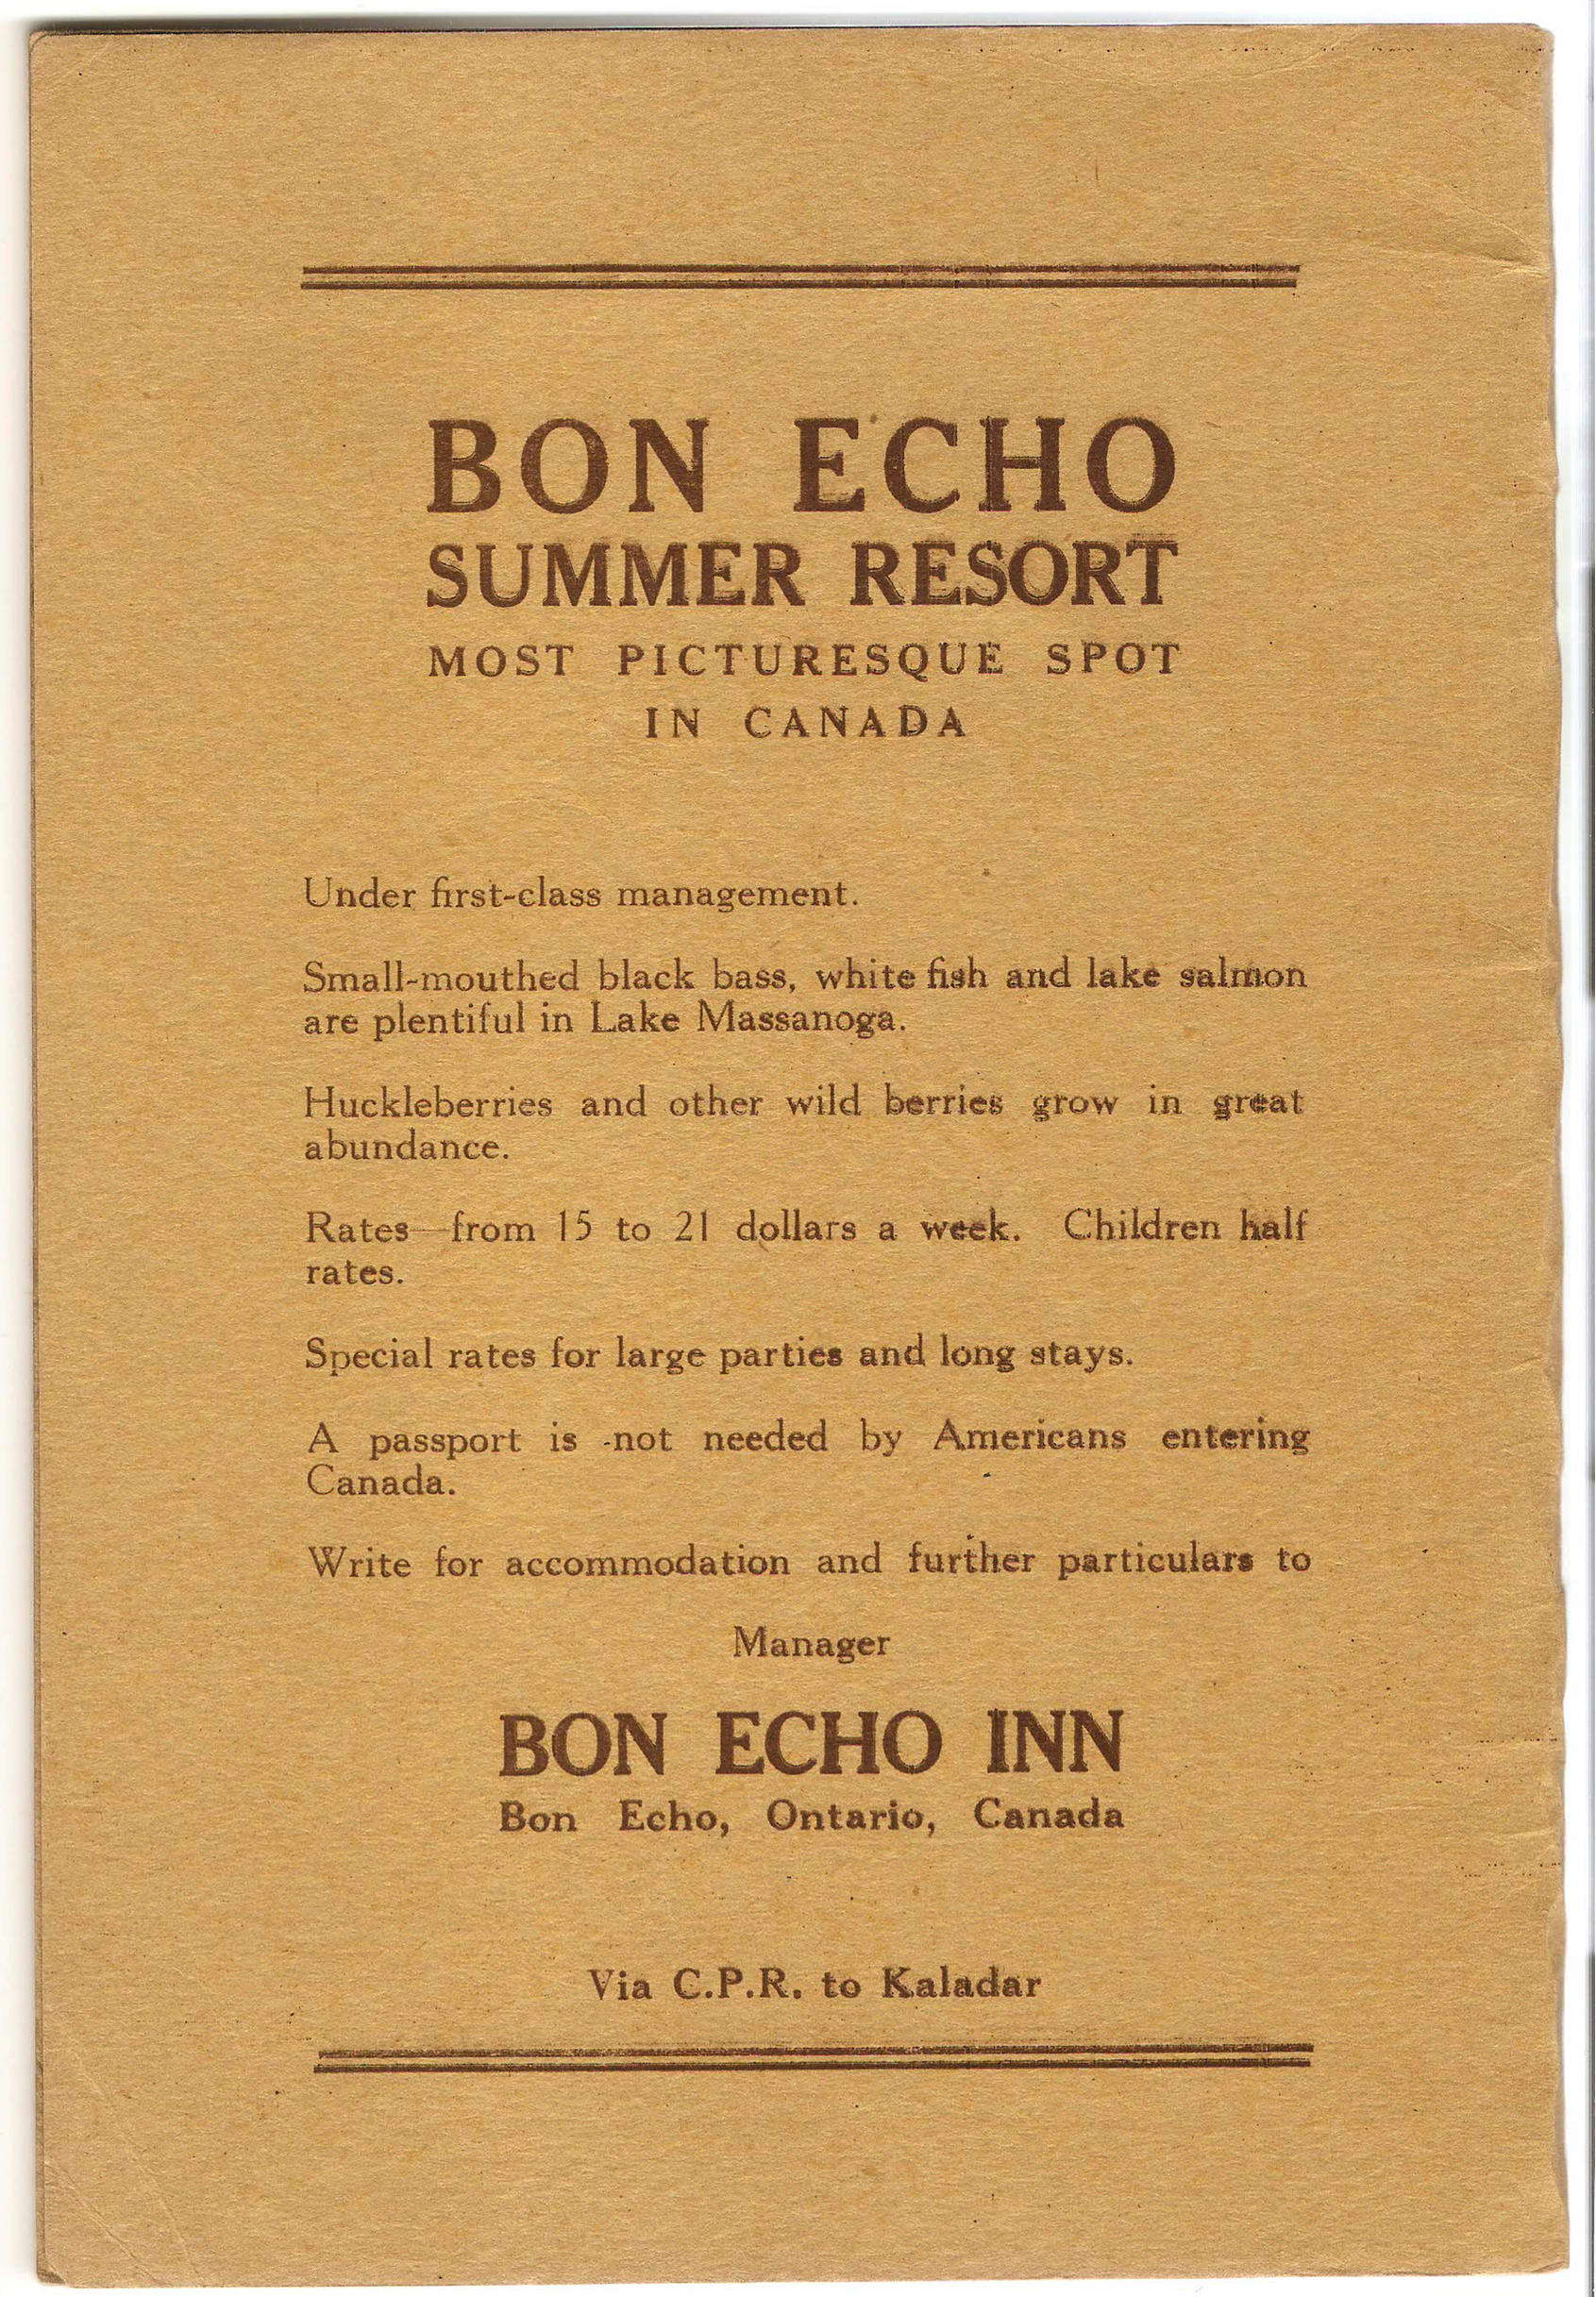 Flora MacDonald completed her purchase of the Bon Echo Inn in September, 1910.